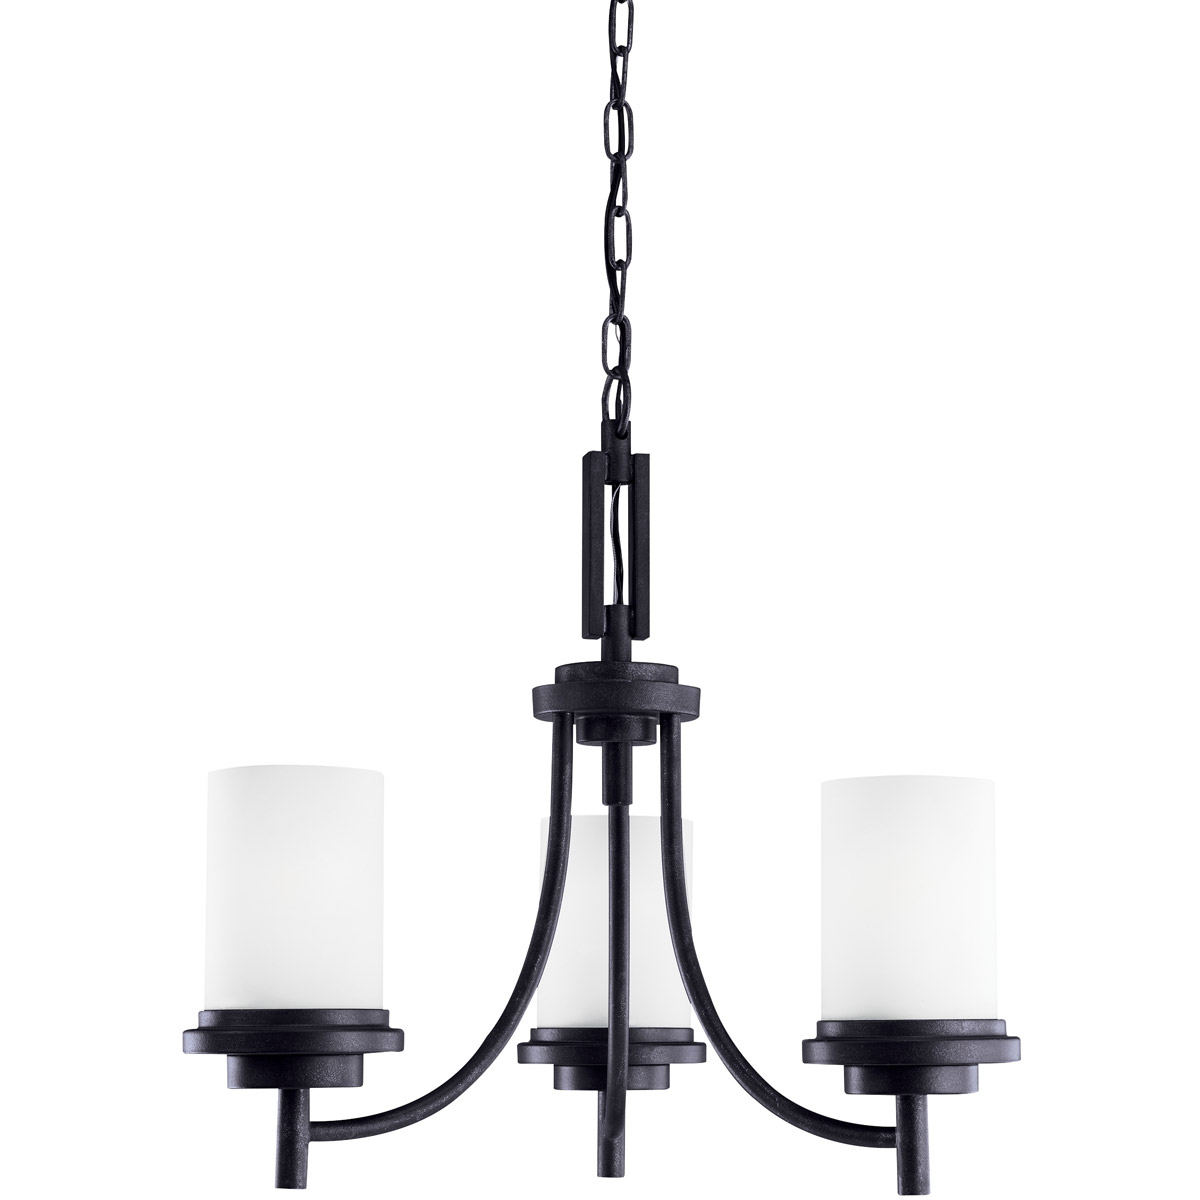 Sea Gull 31660-839 Winnetka 3 Light 21 inch Blacksmith Chandelier Ceiling Light in Satin Etched Glass, Standard photo